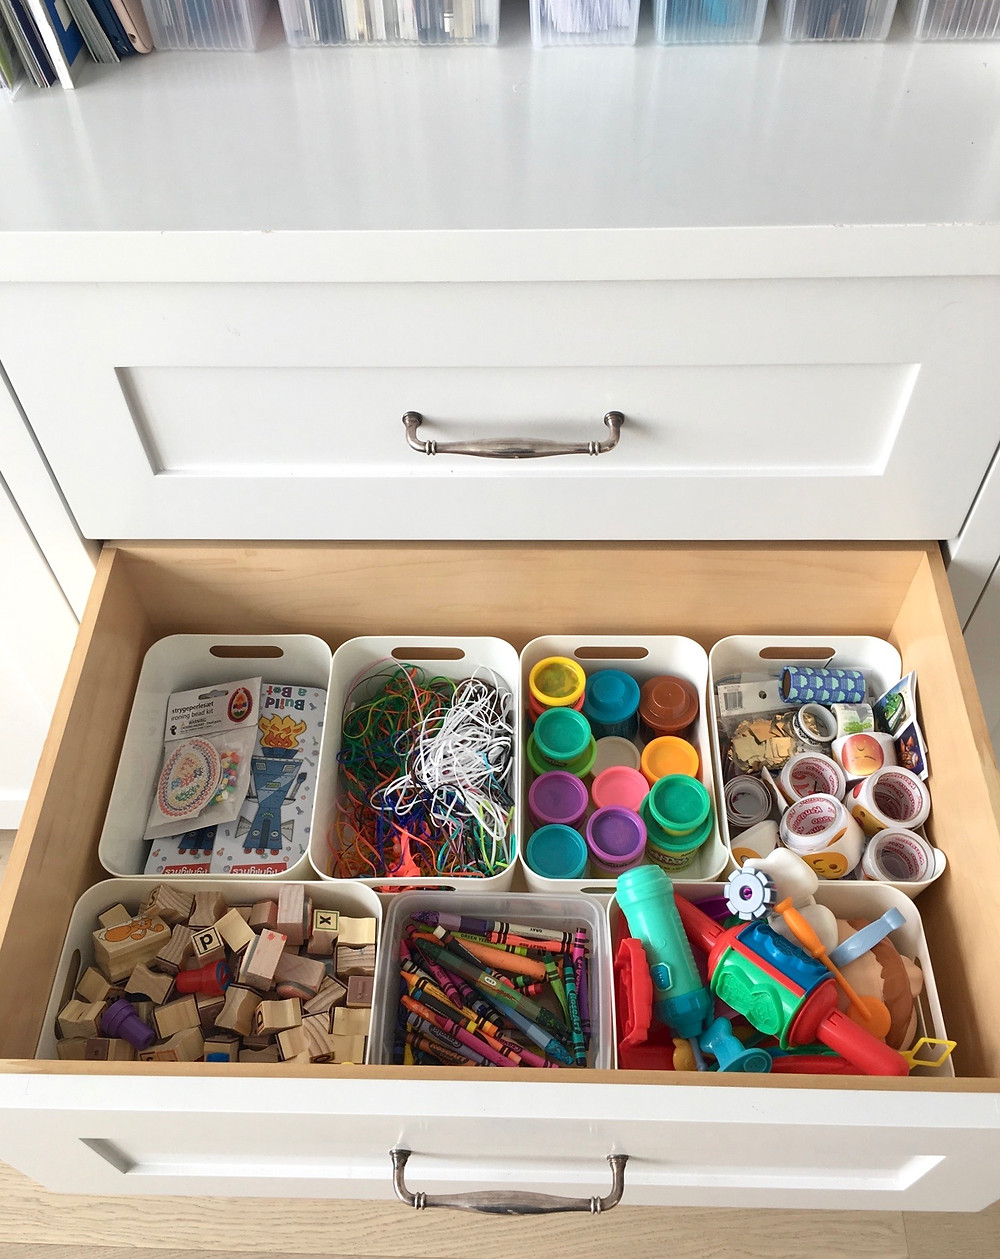 bins for playroom organization